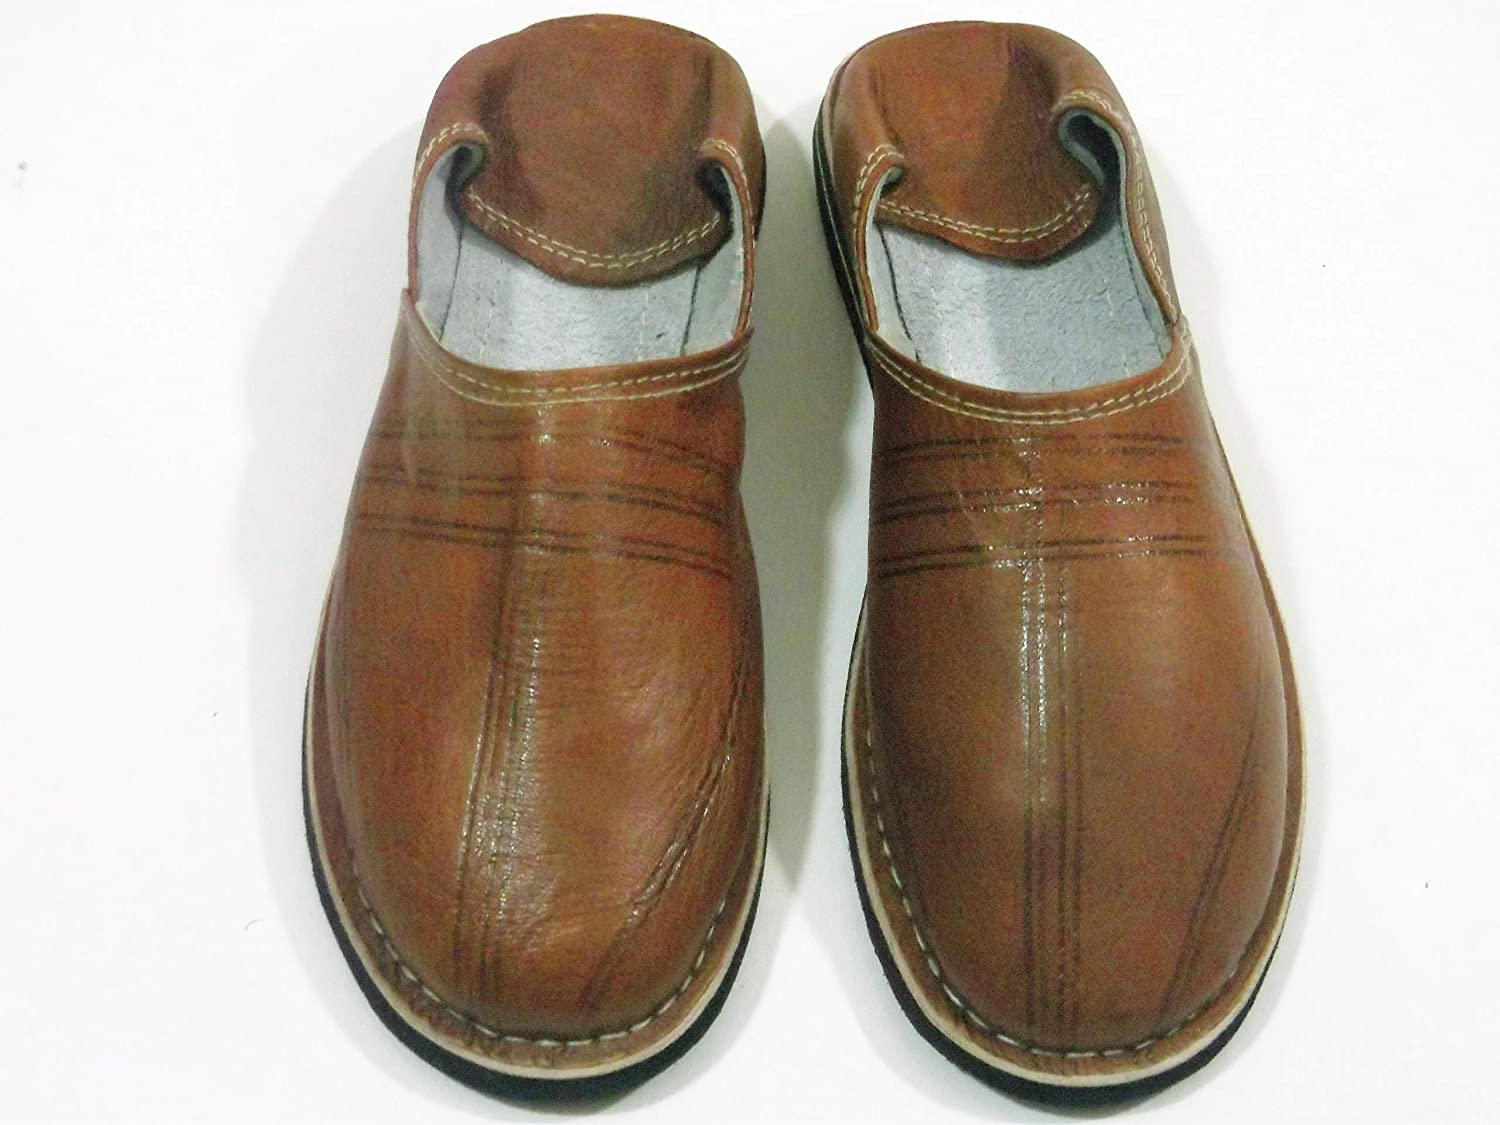 leather Max 78% OFF slippers 5 popular babouches en slippe mens brown cuir